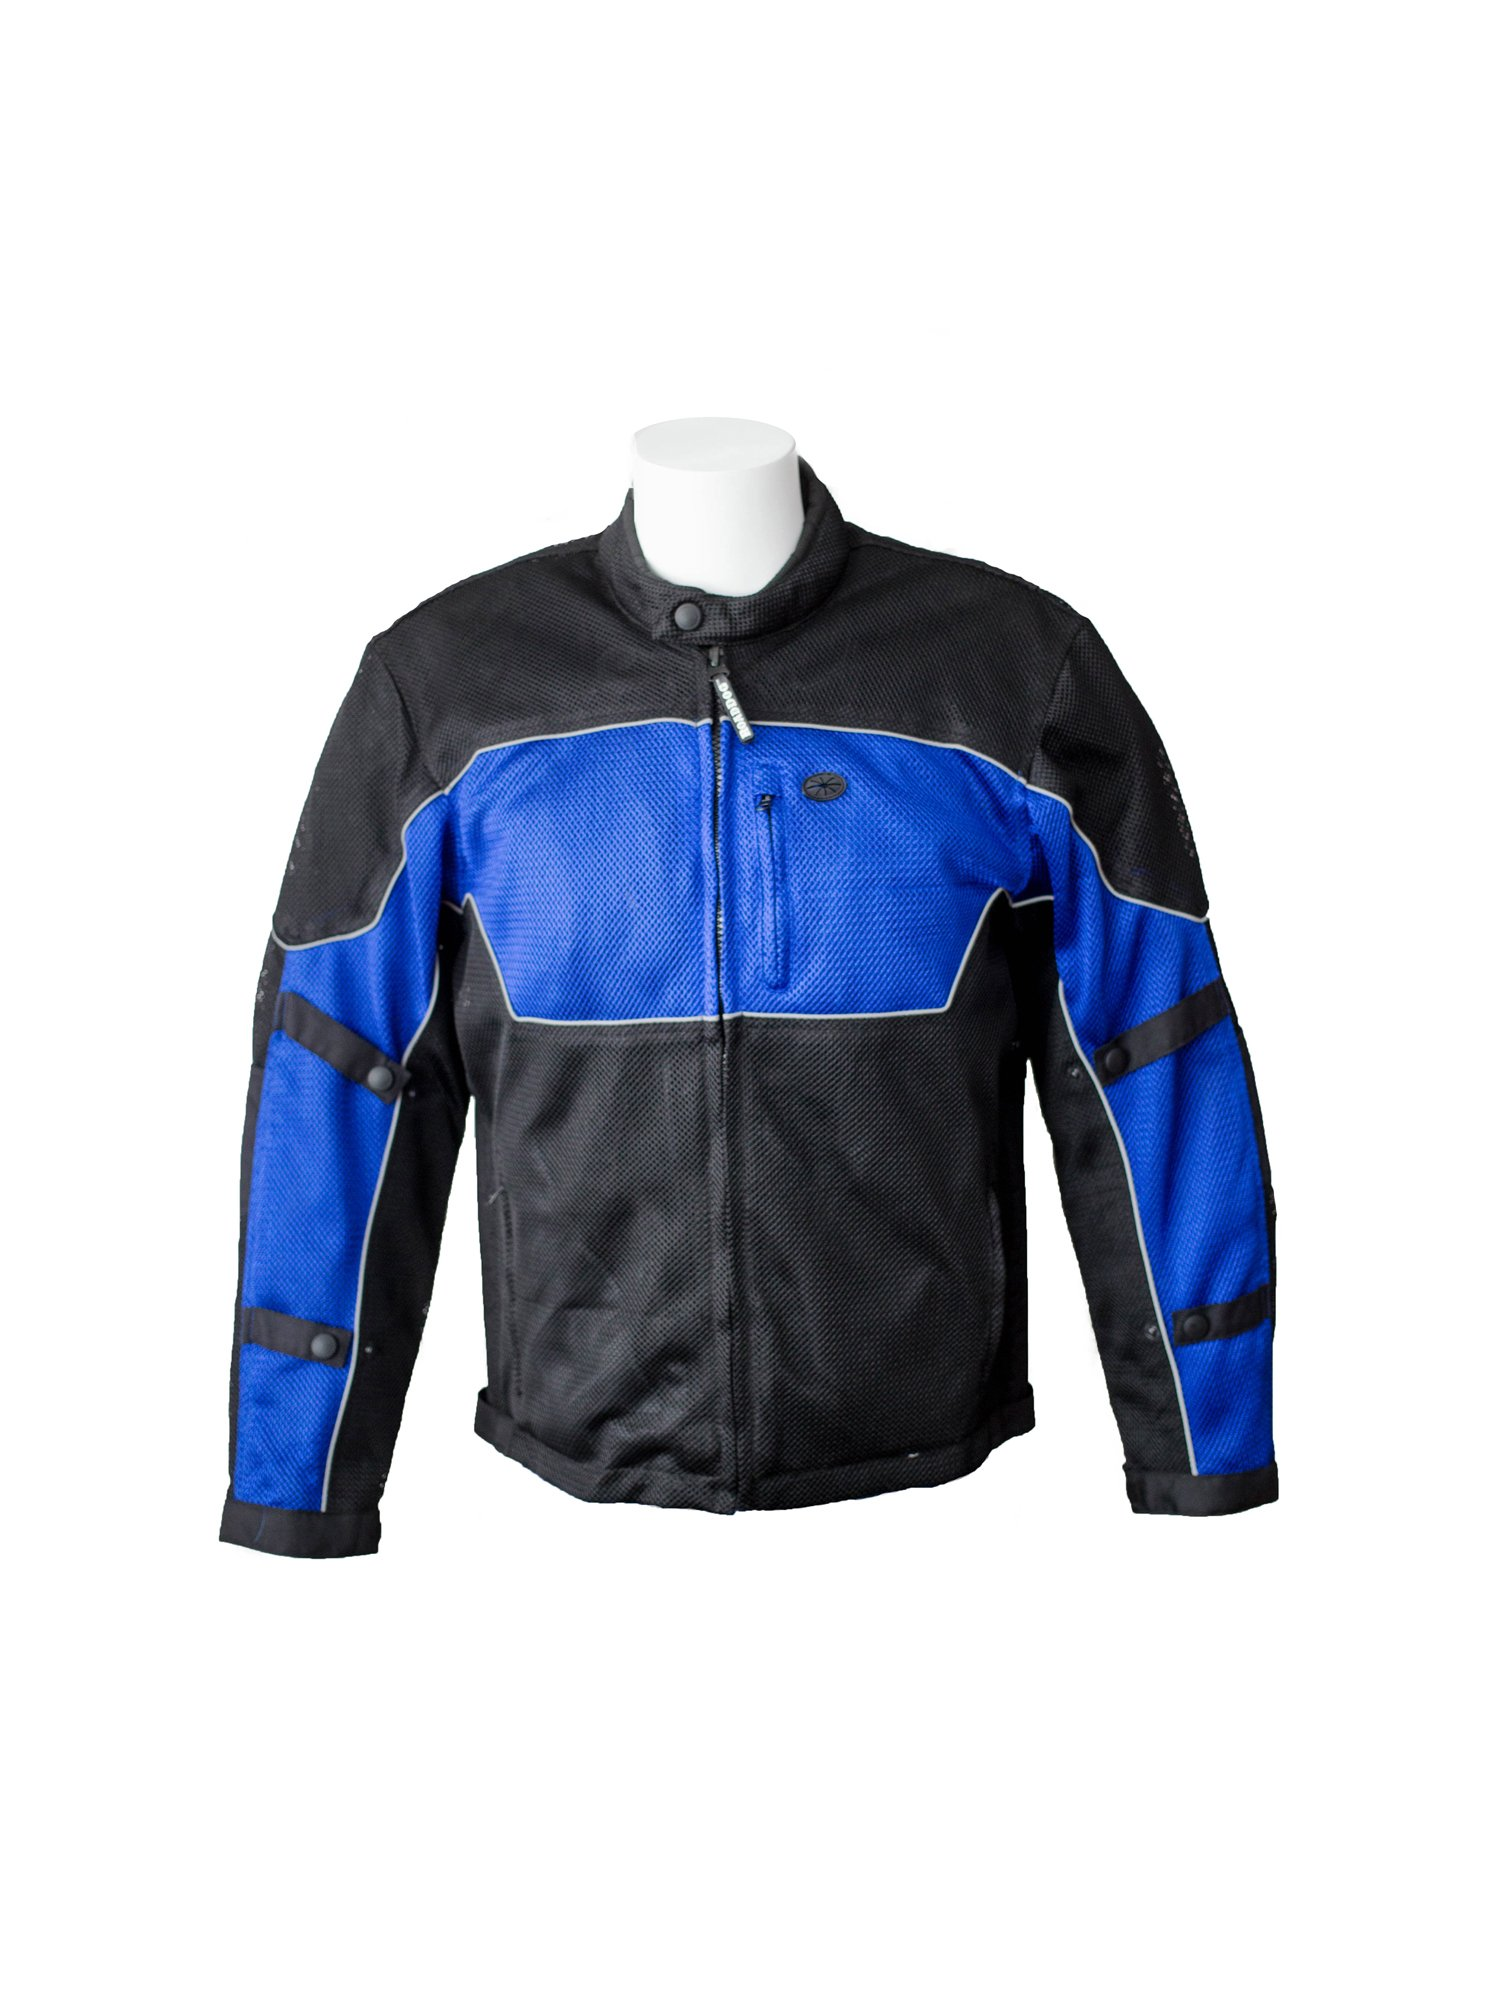 RoadDog Hurricane Mesh Motorcycle Riding Jacket Blue Men's Large